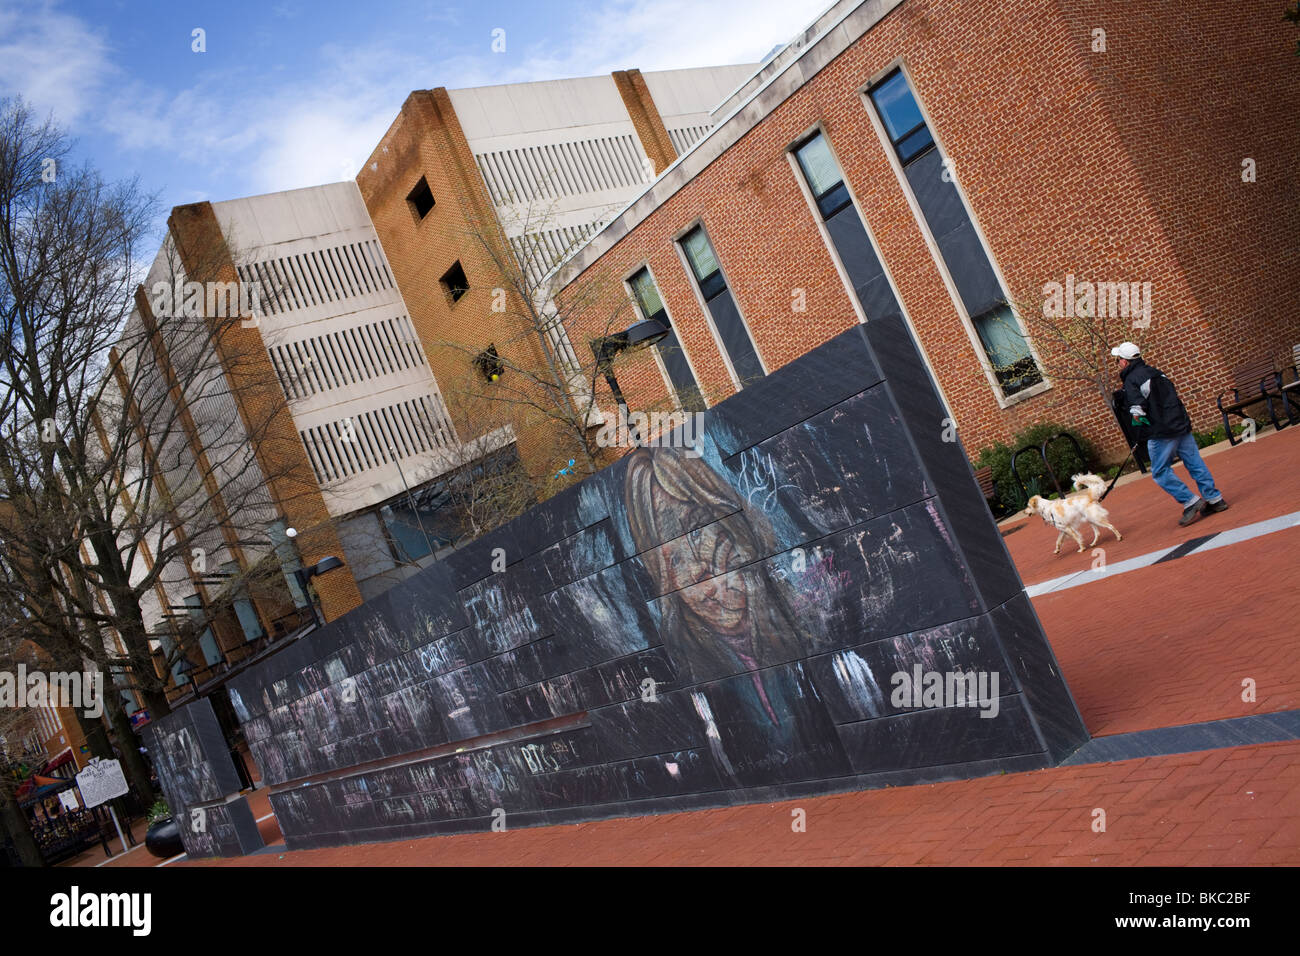 Community Chalkboard and Podium, monument to First Amendment, Downtown Mall, Charlottesville, Virginia - Stock Image